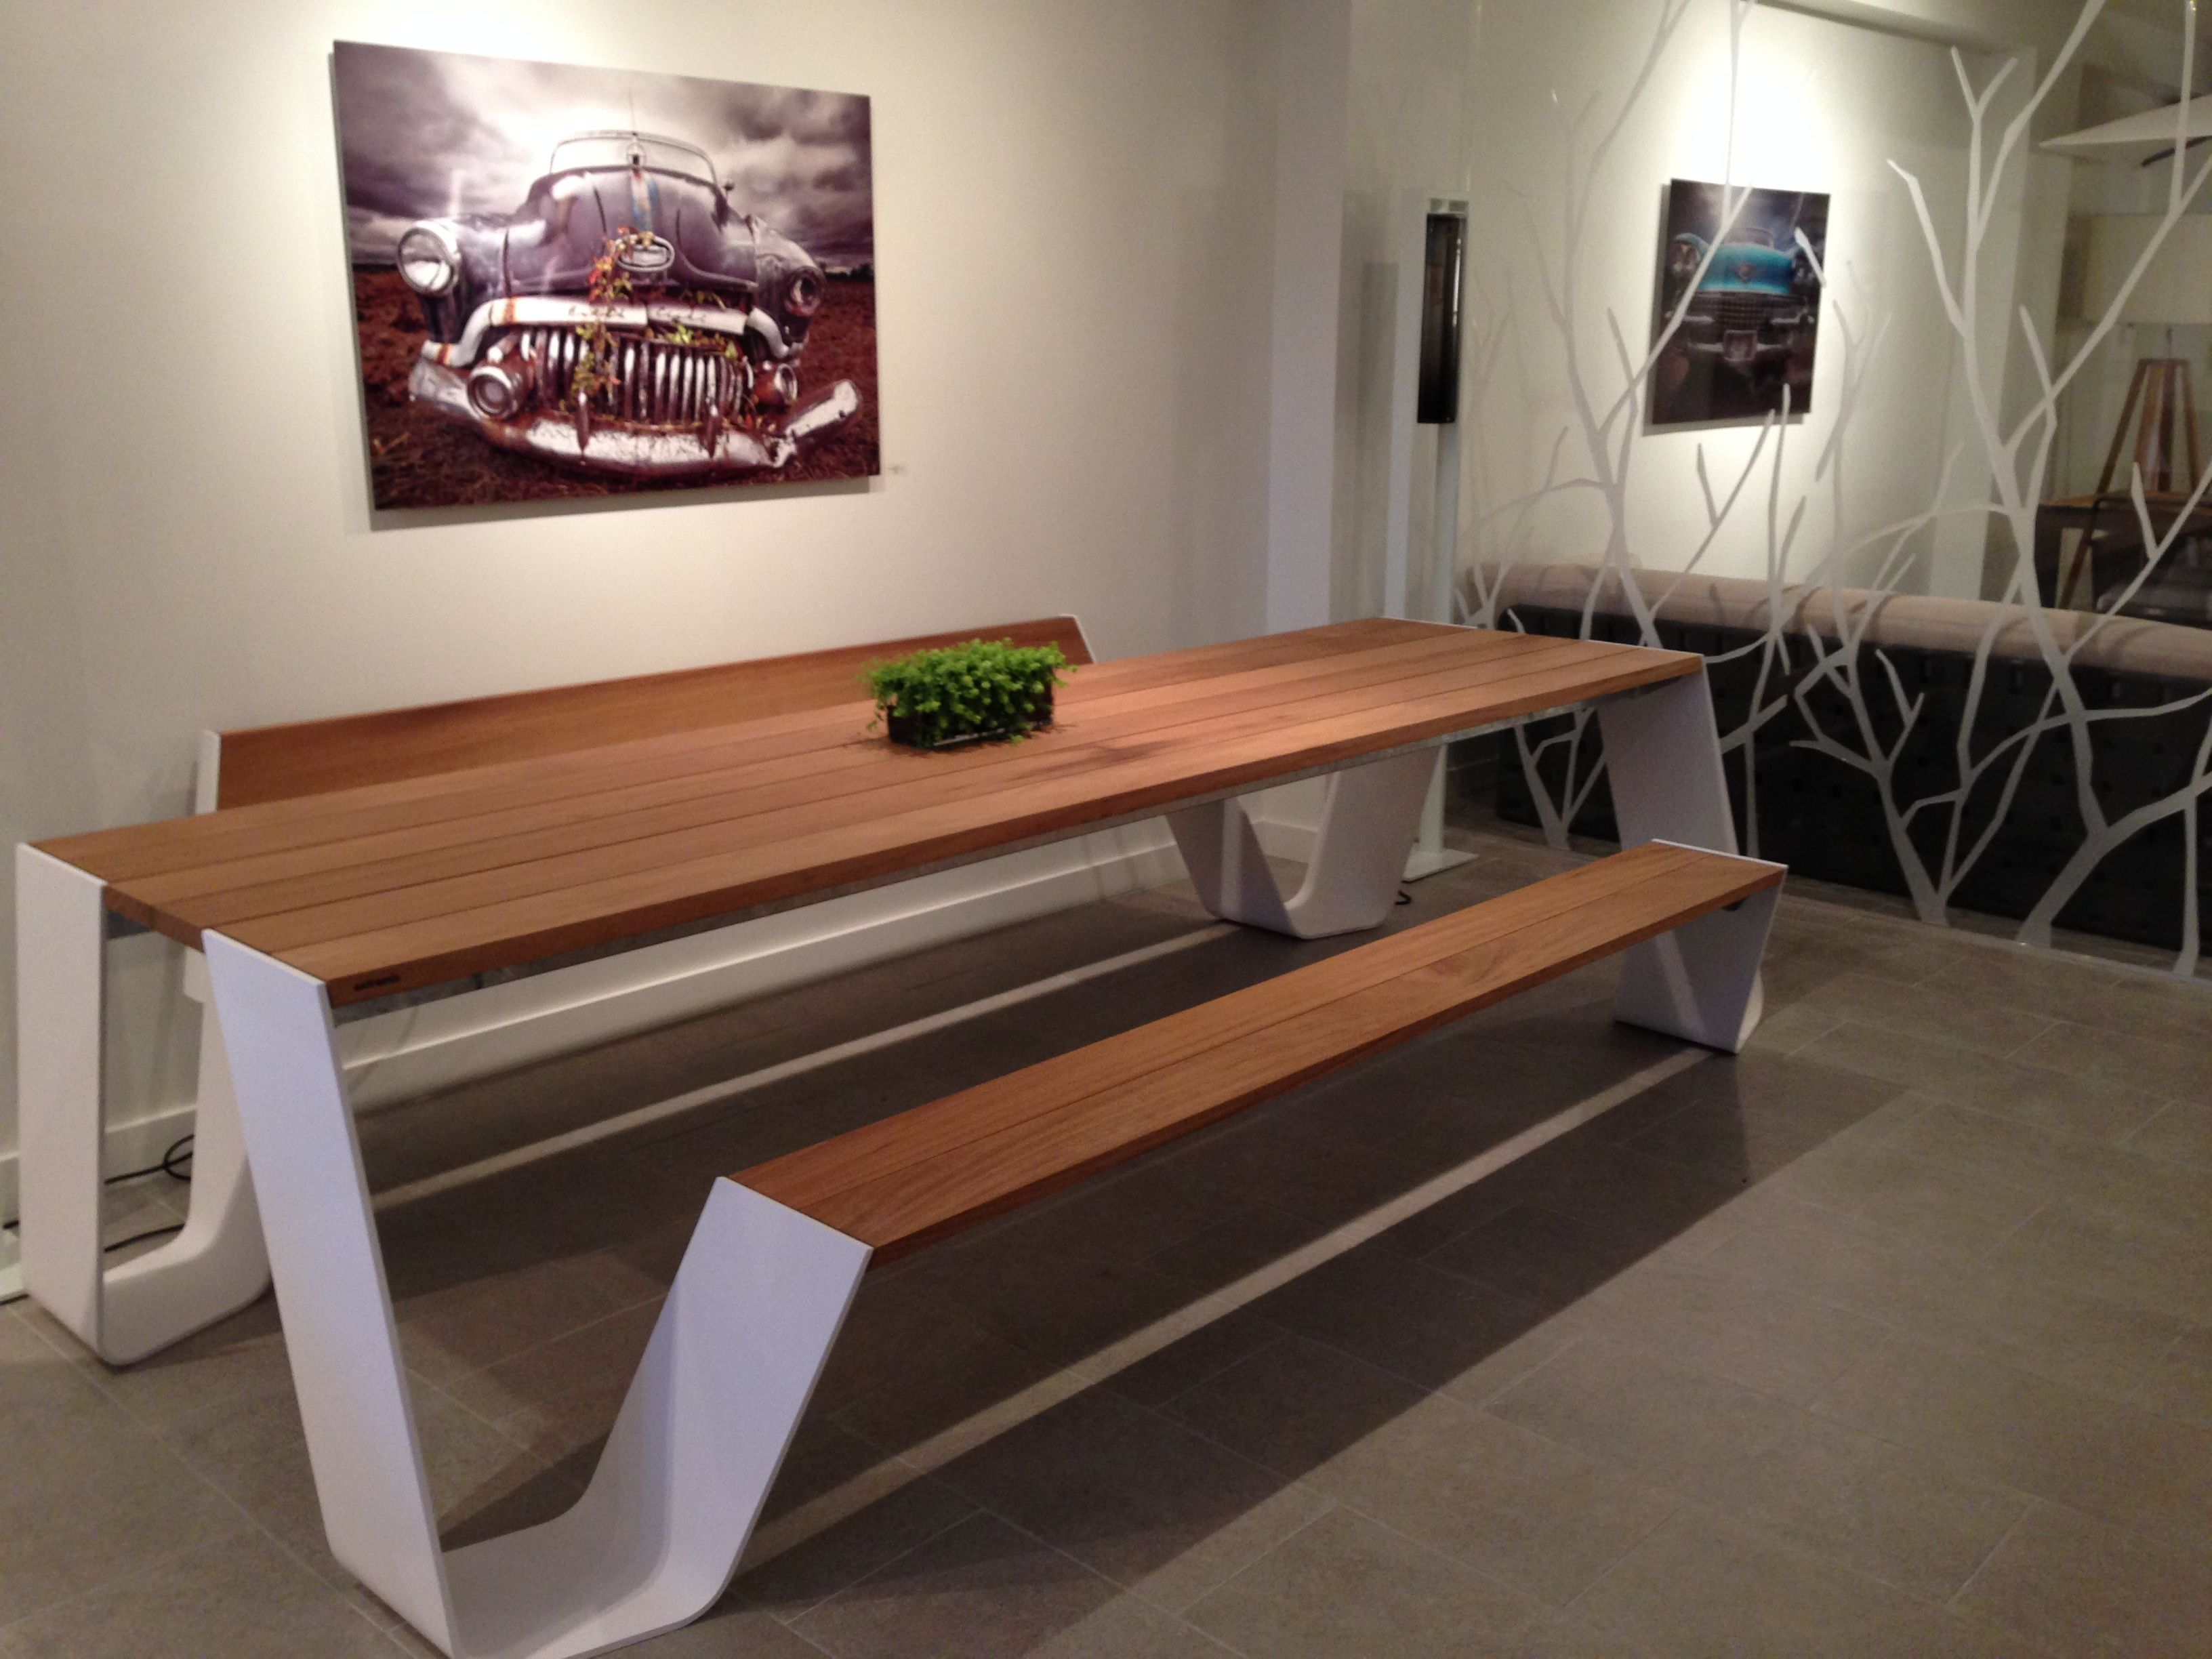 Hopper Table By #Extremis   #outdoor Furniture Company From Belgium In Casa  Outdoor Showroom